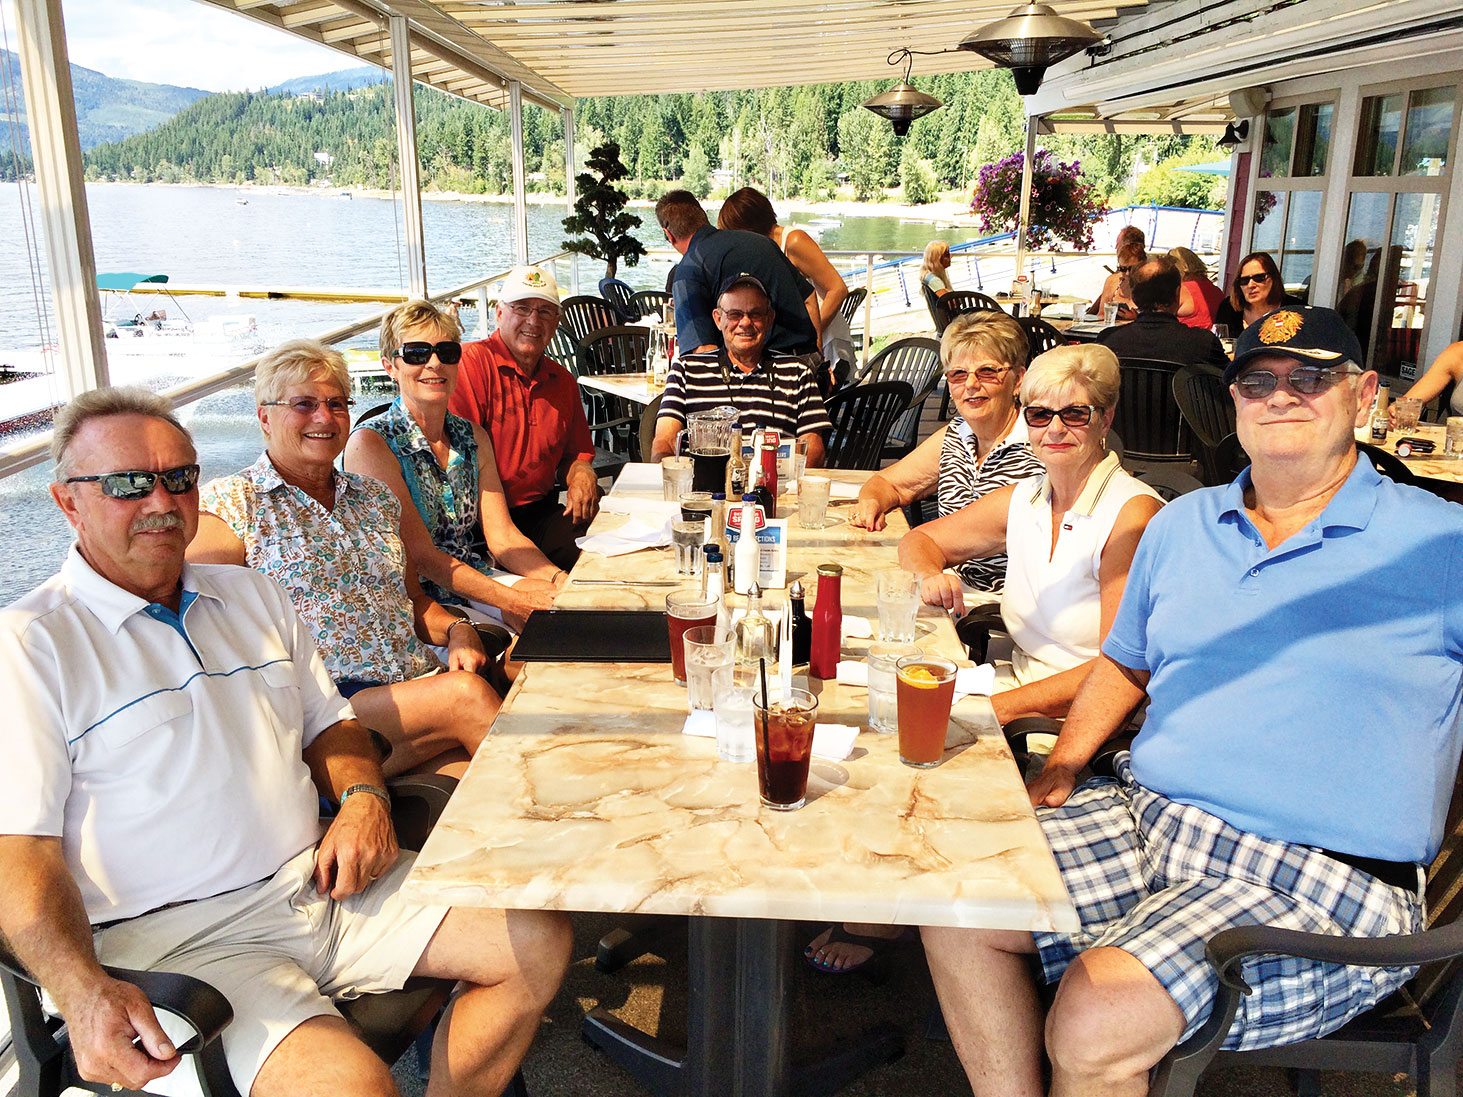 From left to right are Dale and Diane Stokke, Carolyn and Ron Jarvis, Don and Elaine Friesen and Sharon and Terry Eade.